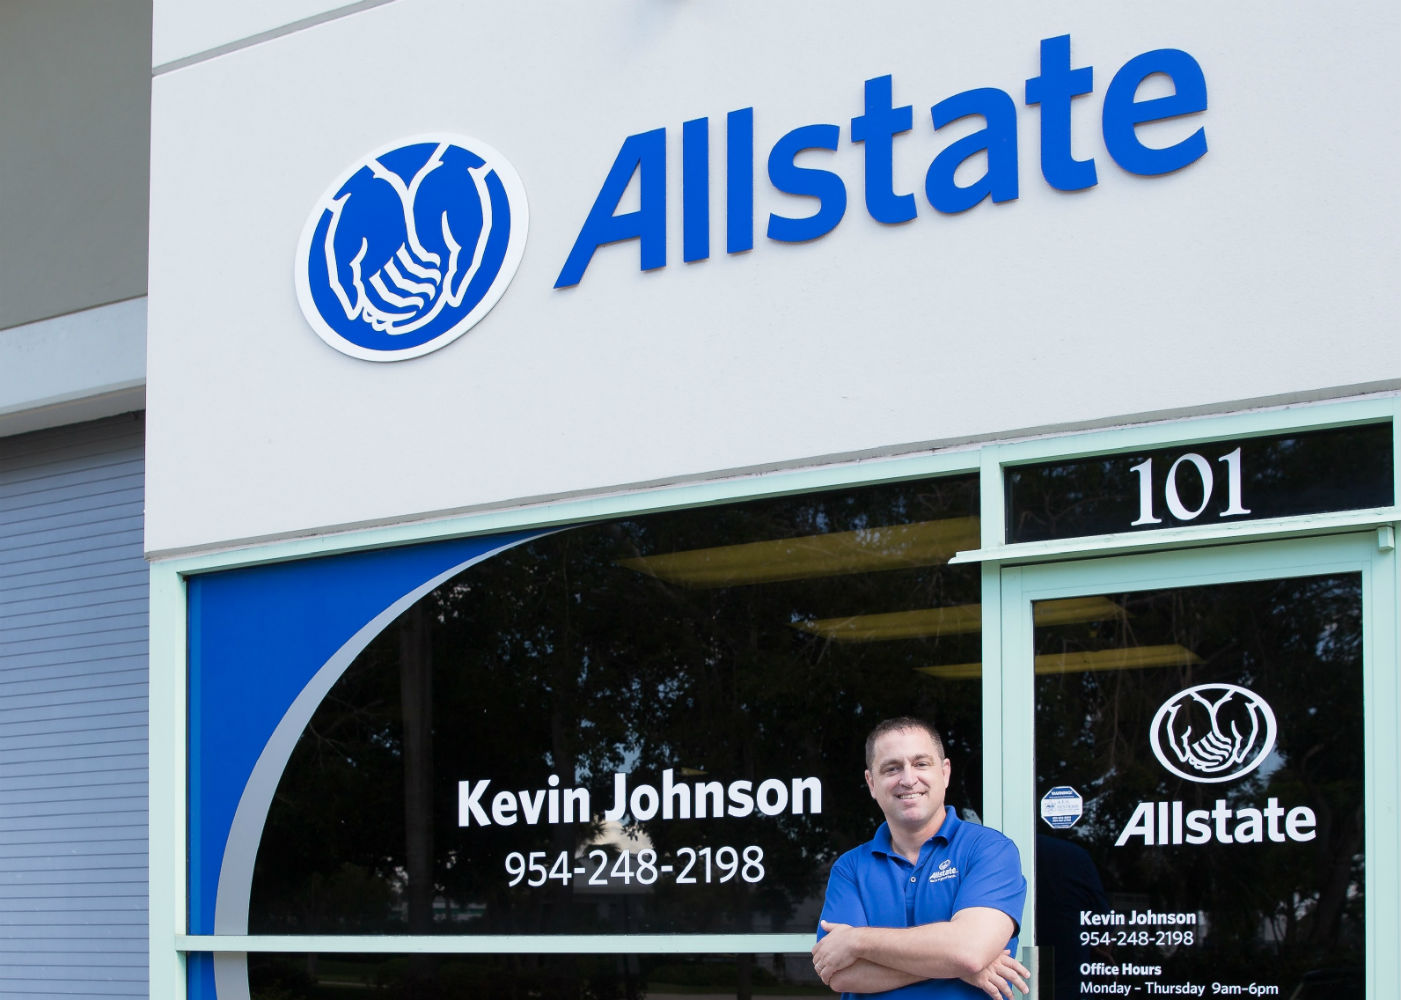 Kevin Johnson: Allstate Insurance image 10